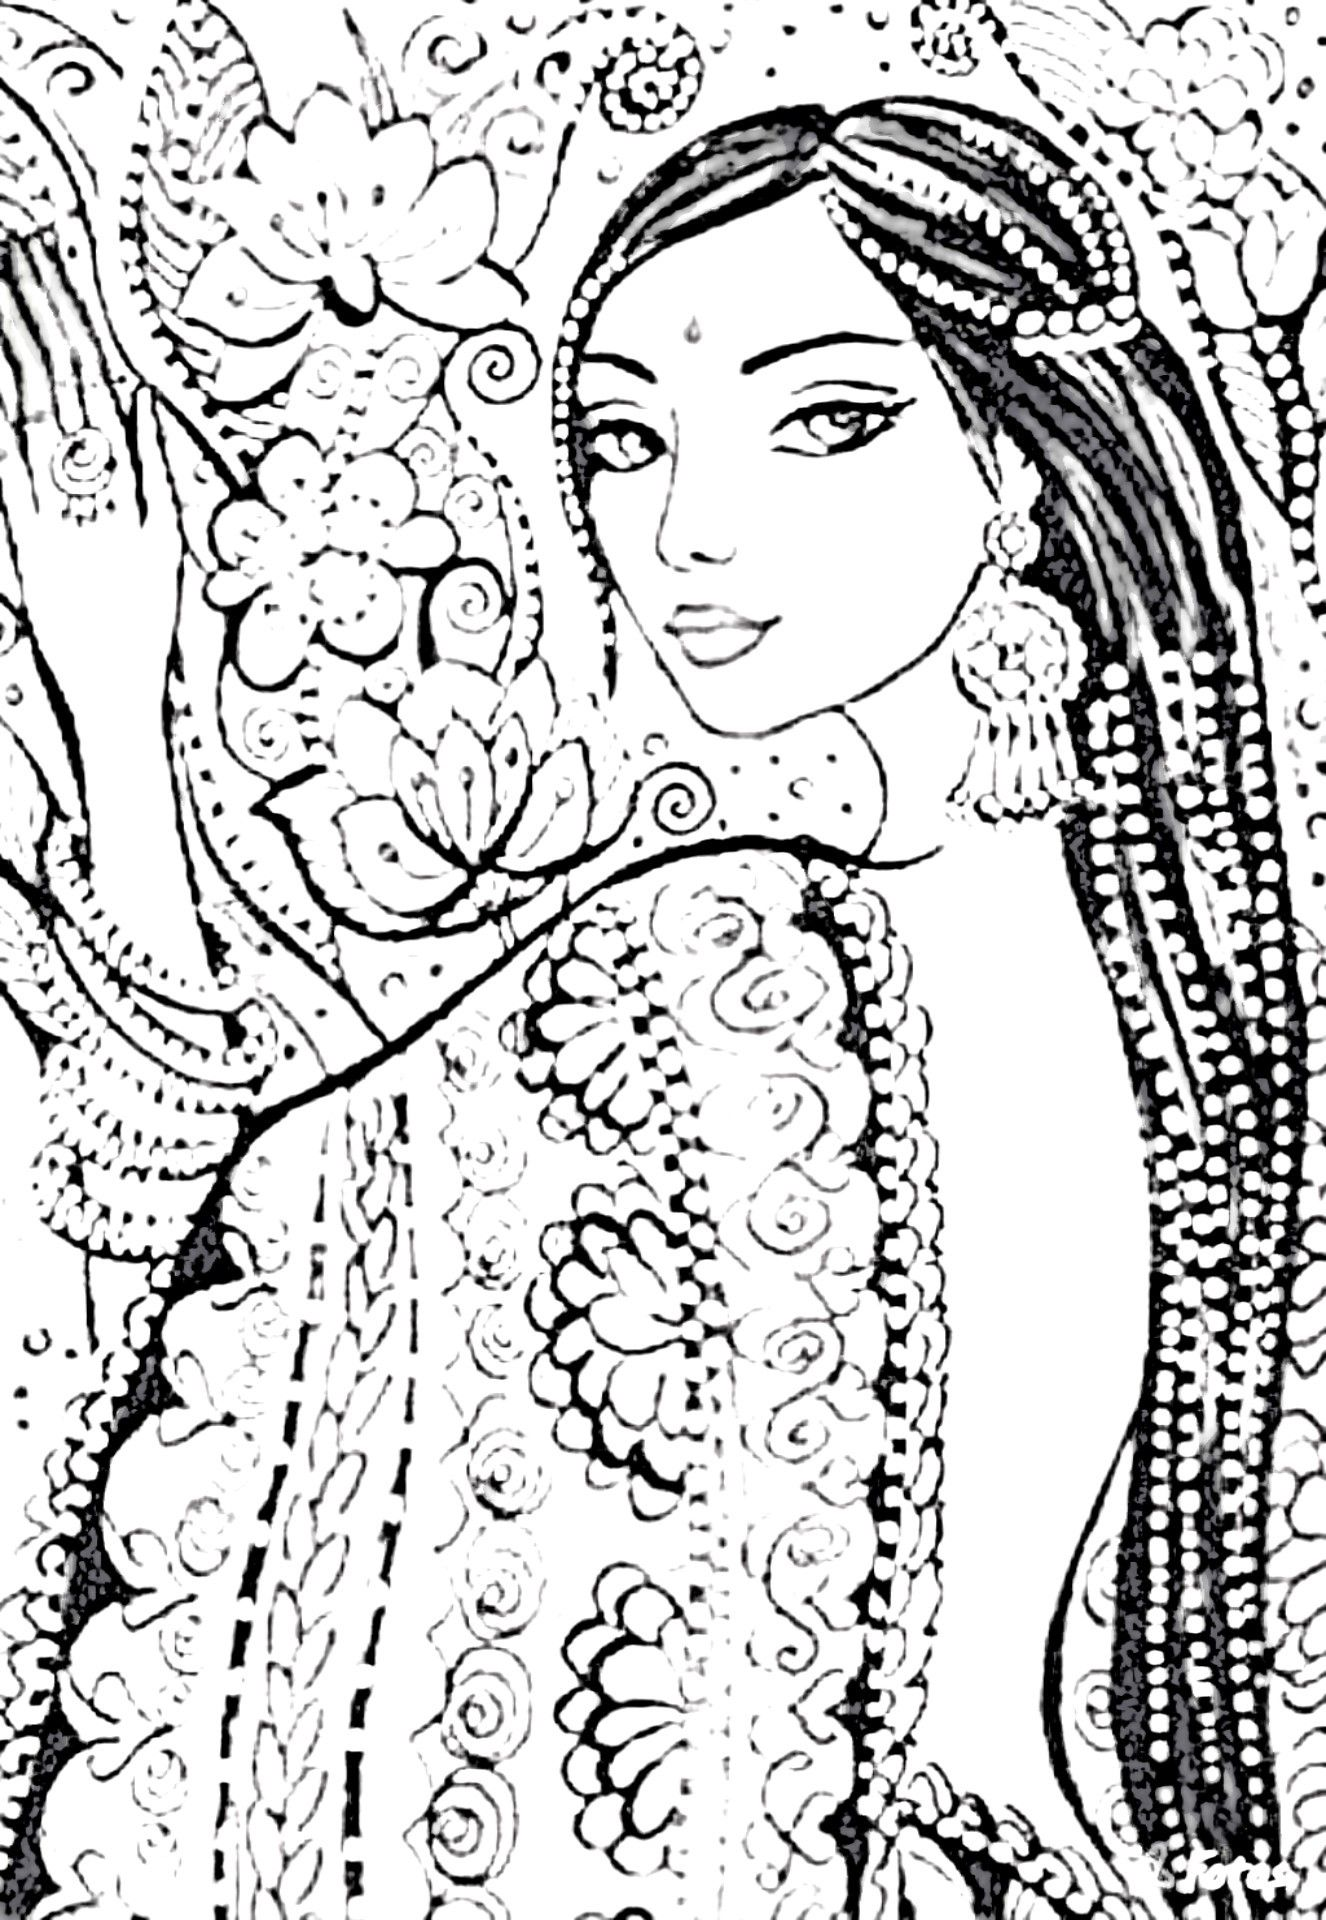 Pin By Cristina B On Asian Persuasion Coloring Pages Zentangle Patterns Coloring Pages Colorful Pictures